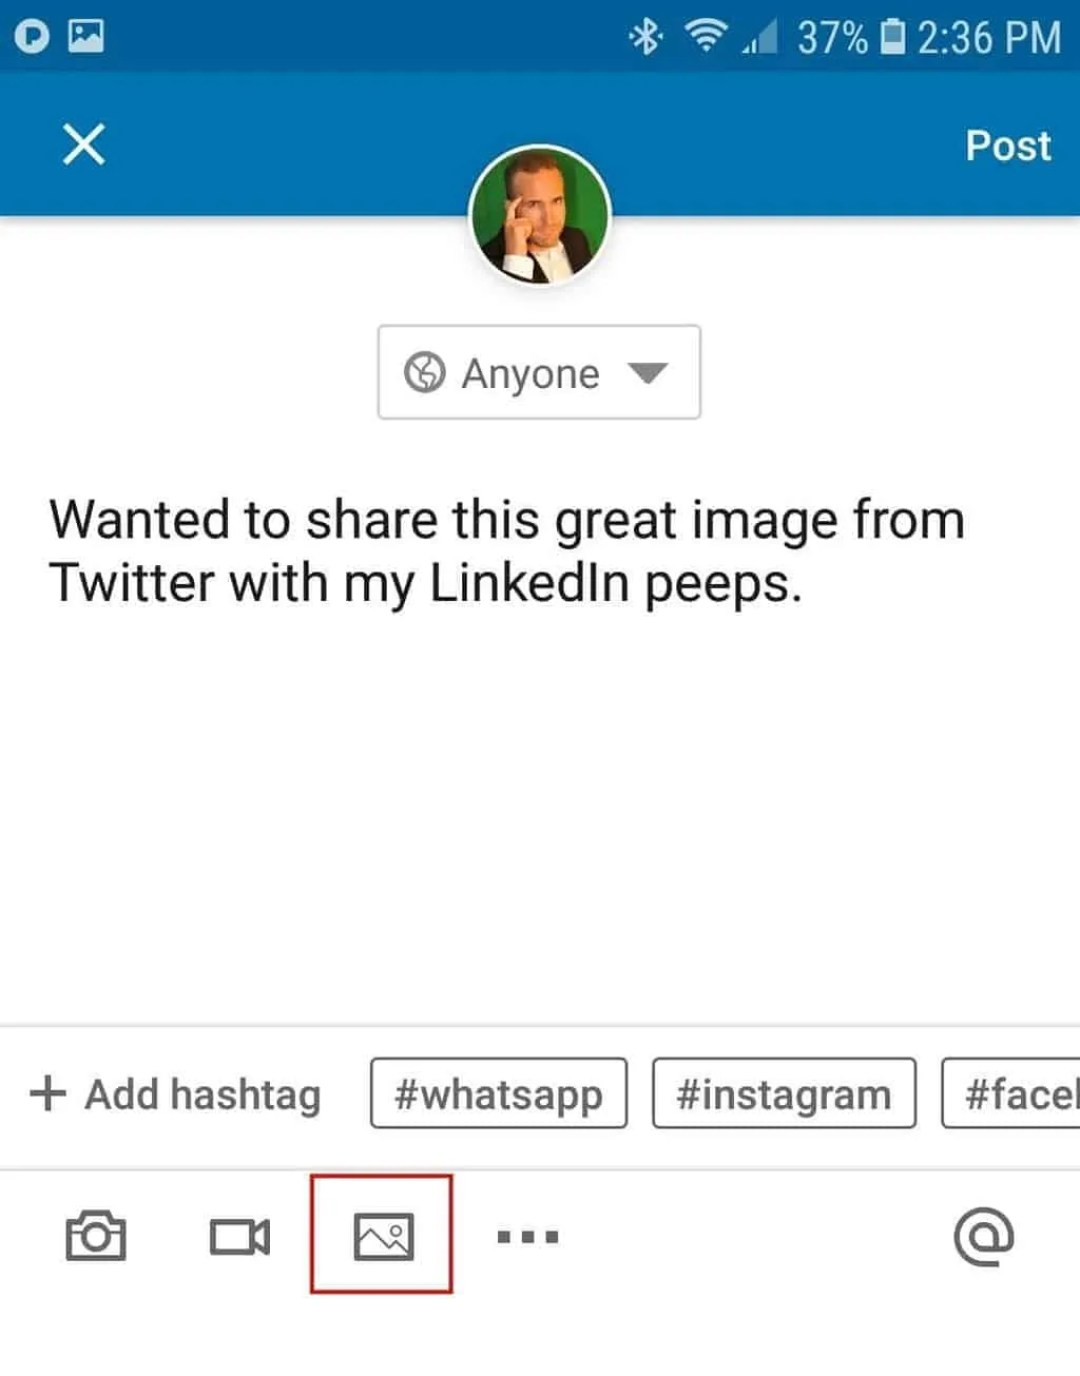 Type your LinkedIn status update and then attach the image that you saved